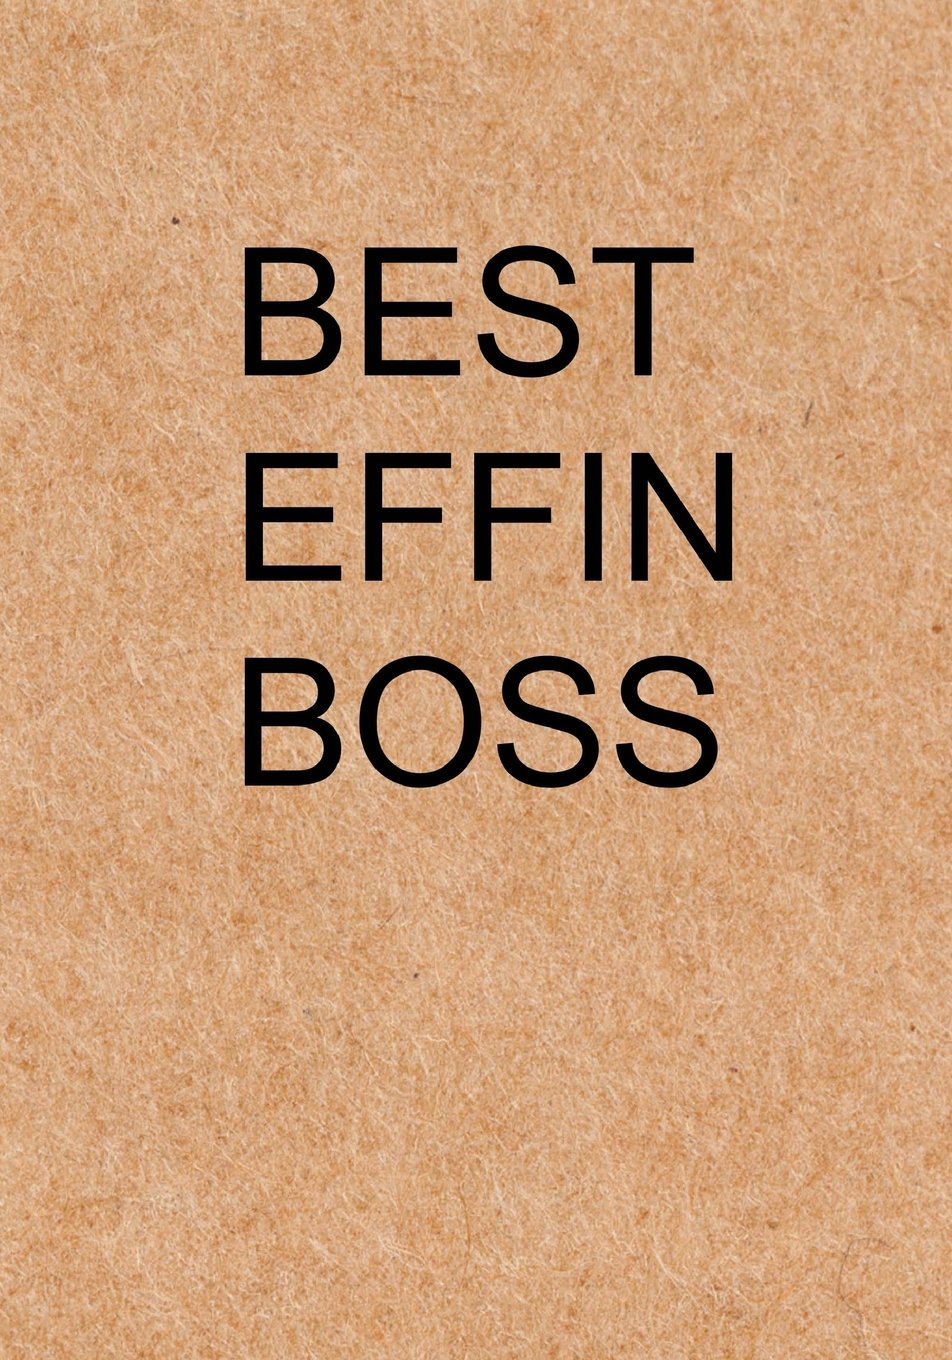 Best Effin Boss: Notebook, Funny Quote Journal with simple brown Cover - Boss Appreciation Humorous funny boss gag gift PDF